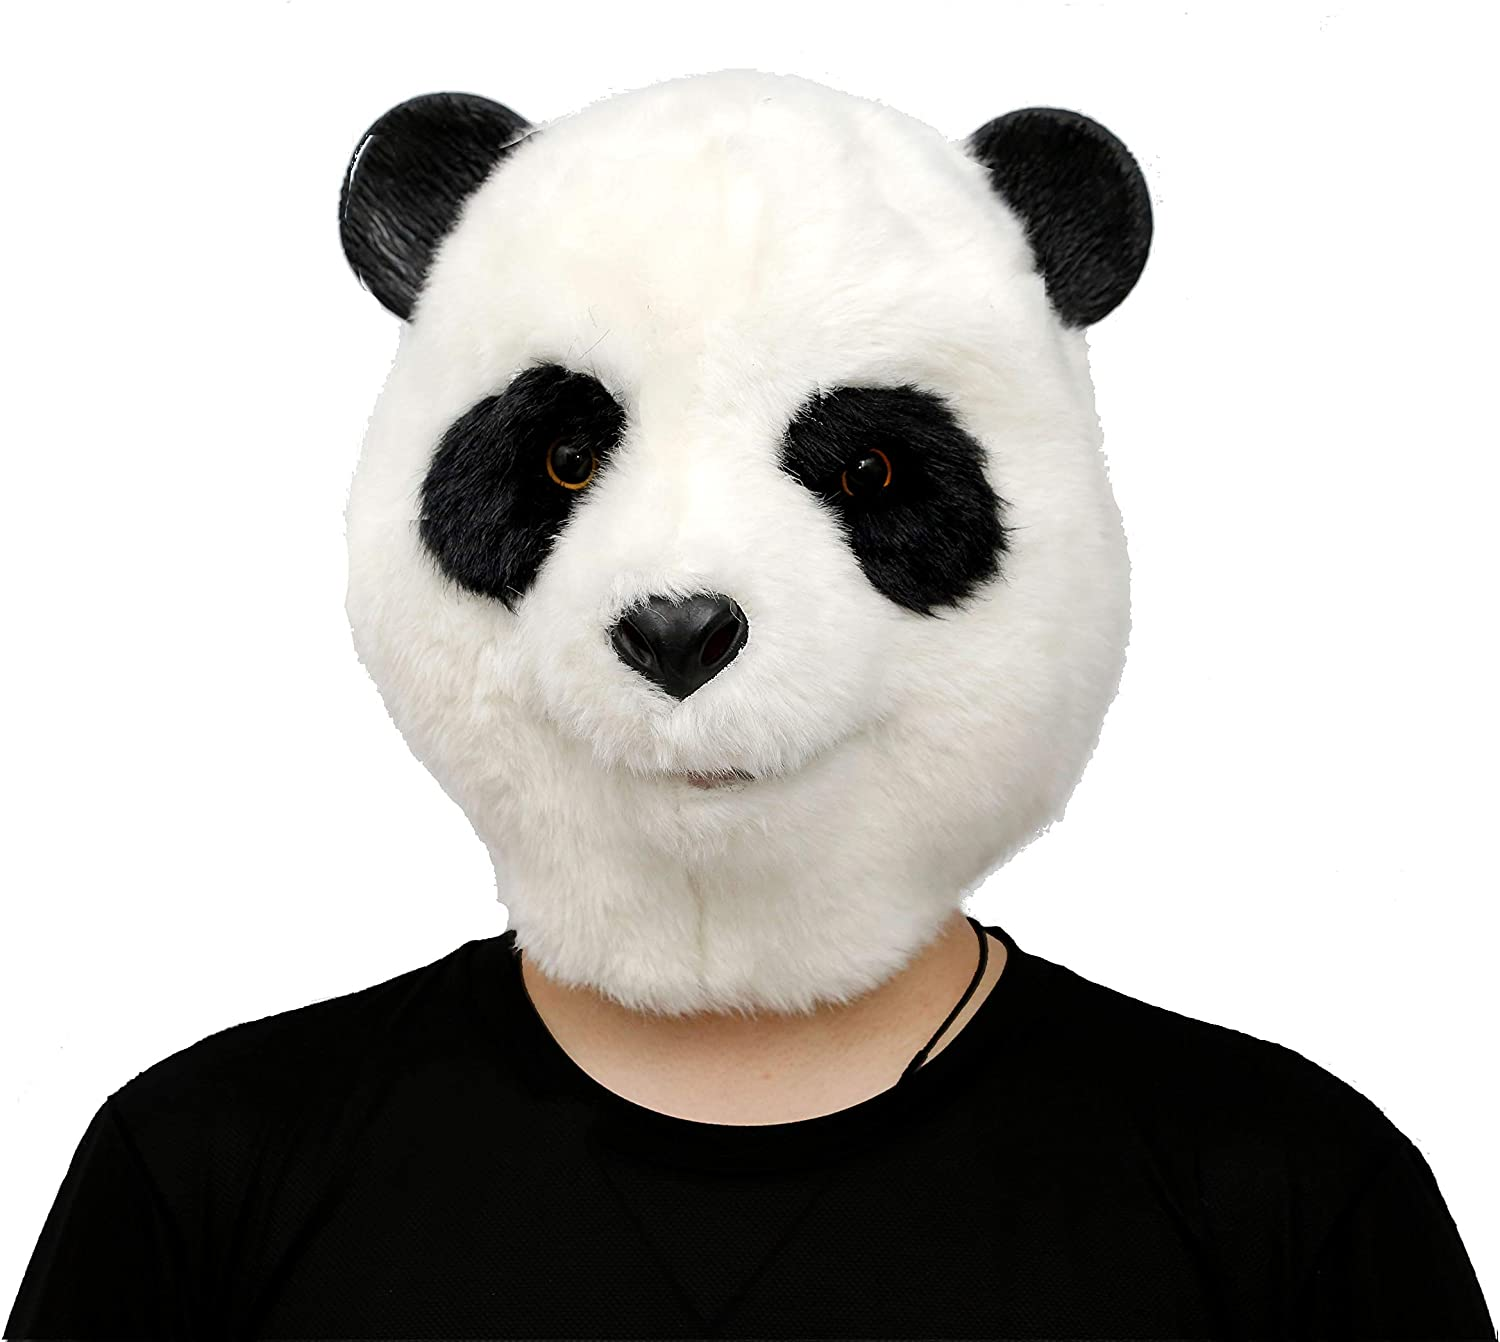 CreepyParty Novelty Halloween Costume Party Latex Animal Head Mask Plush Panda White